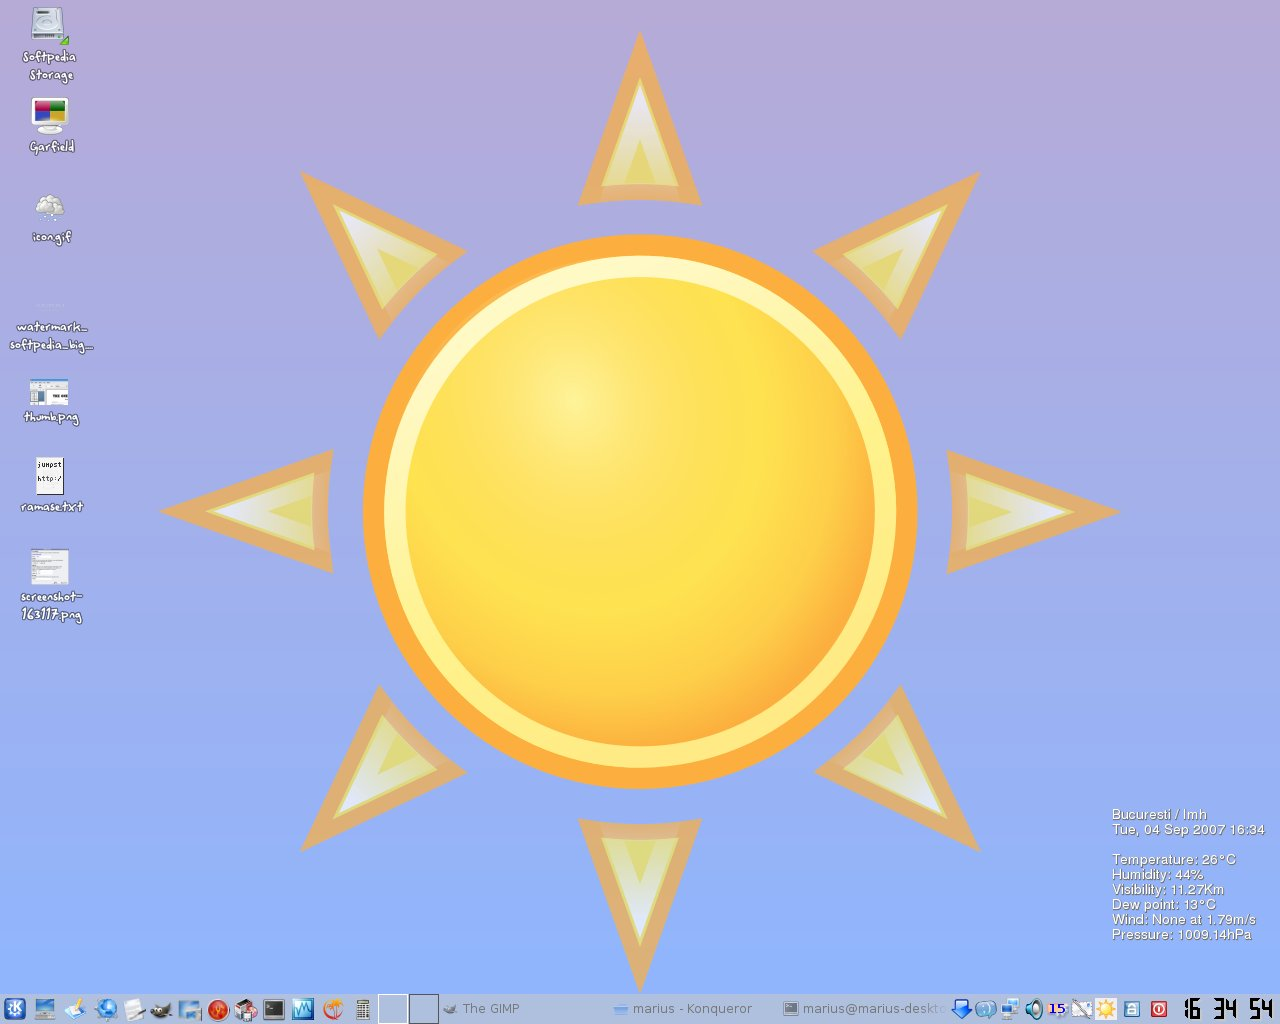 Screenshot 2 of Weather wallpaper. The image below has been reduced in size.